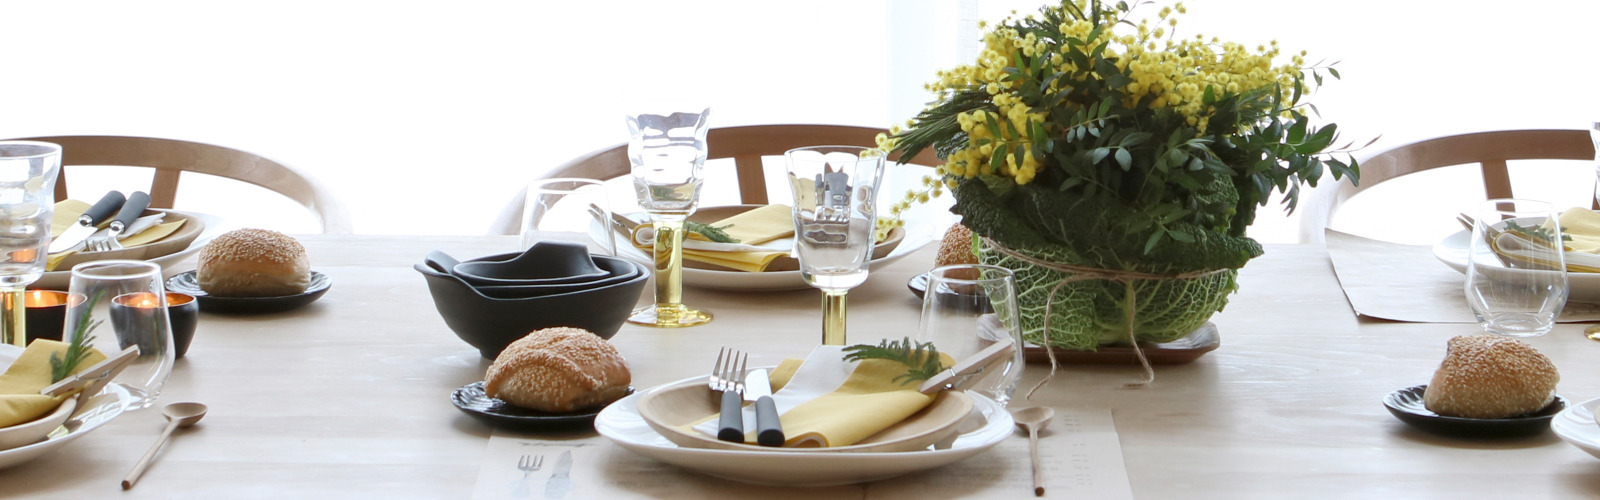 Spring Styling LinStyle Mustard Napkins